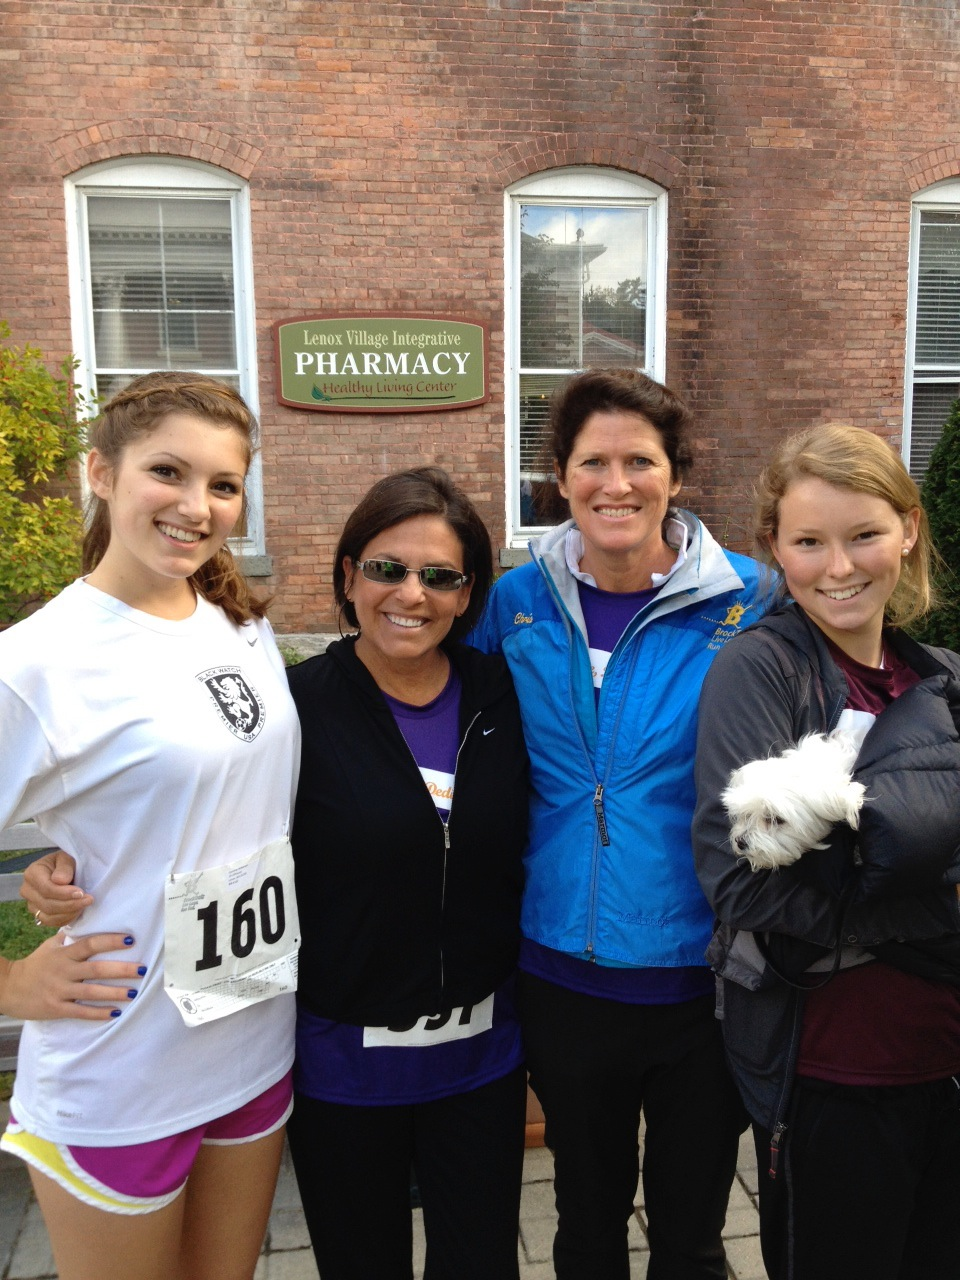 Caroline with her mom and big sis and close friend before the race.